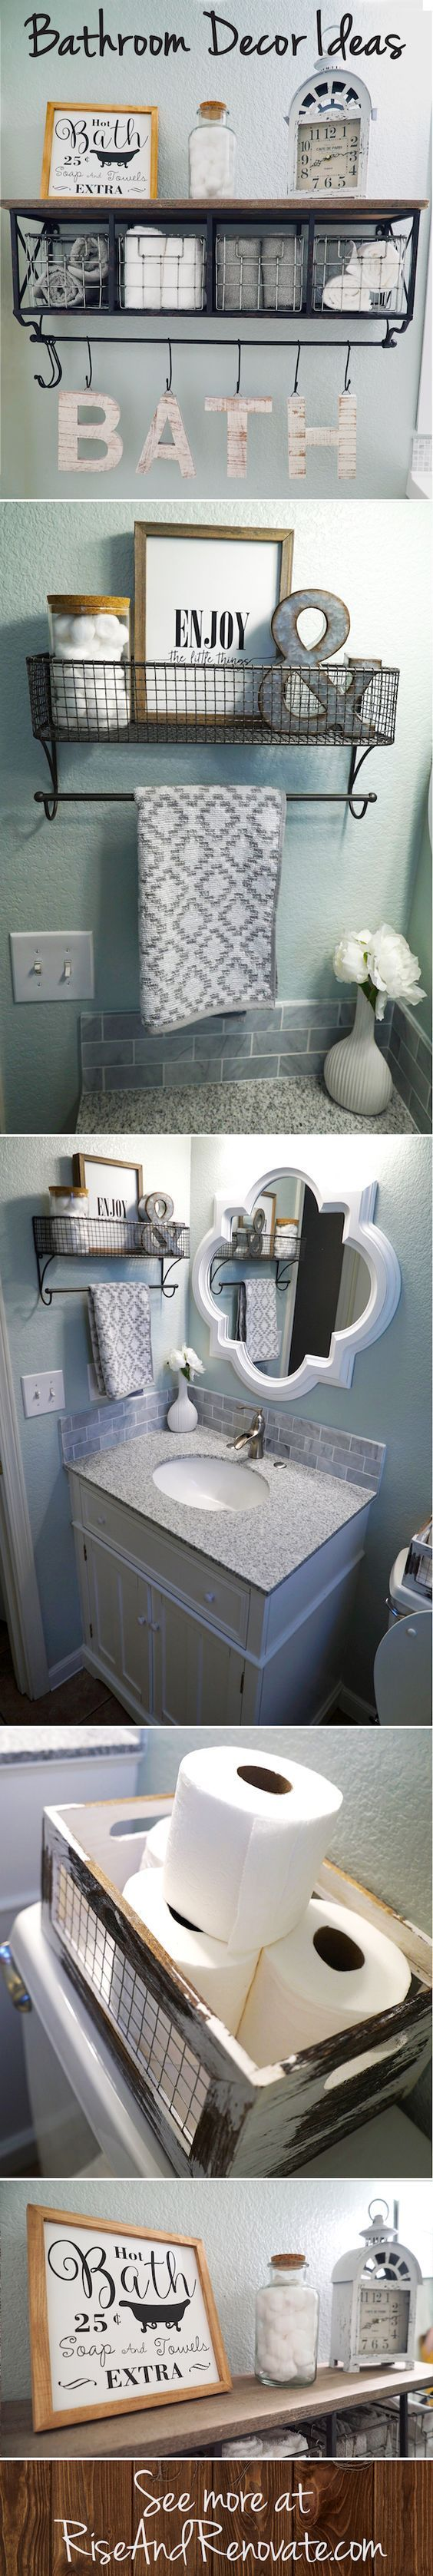 Diy oval bathroom mirrors frame best decor things - Bathroom Makeover Sherwin Williams Sea Salt Pinterest Makeover Farmhouse Decor Vintage Decor